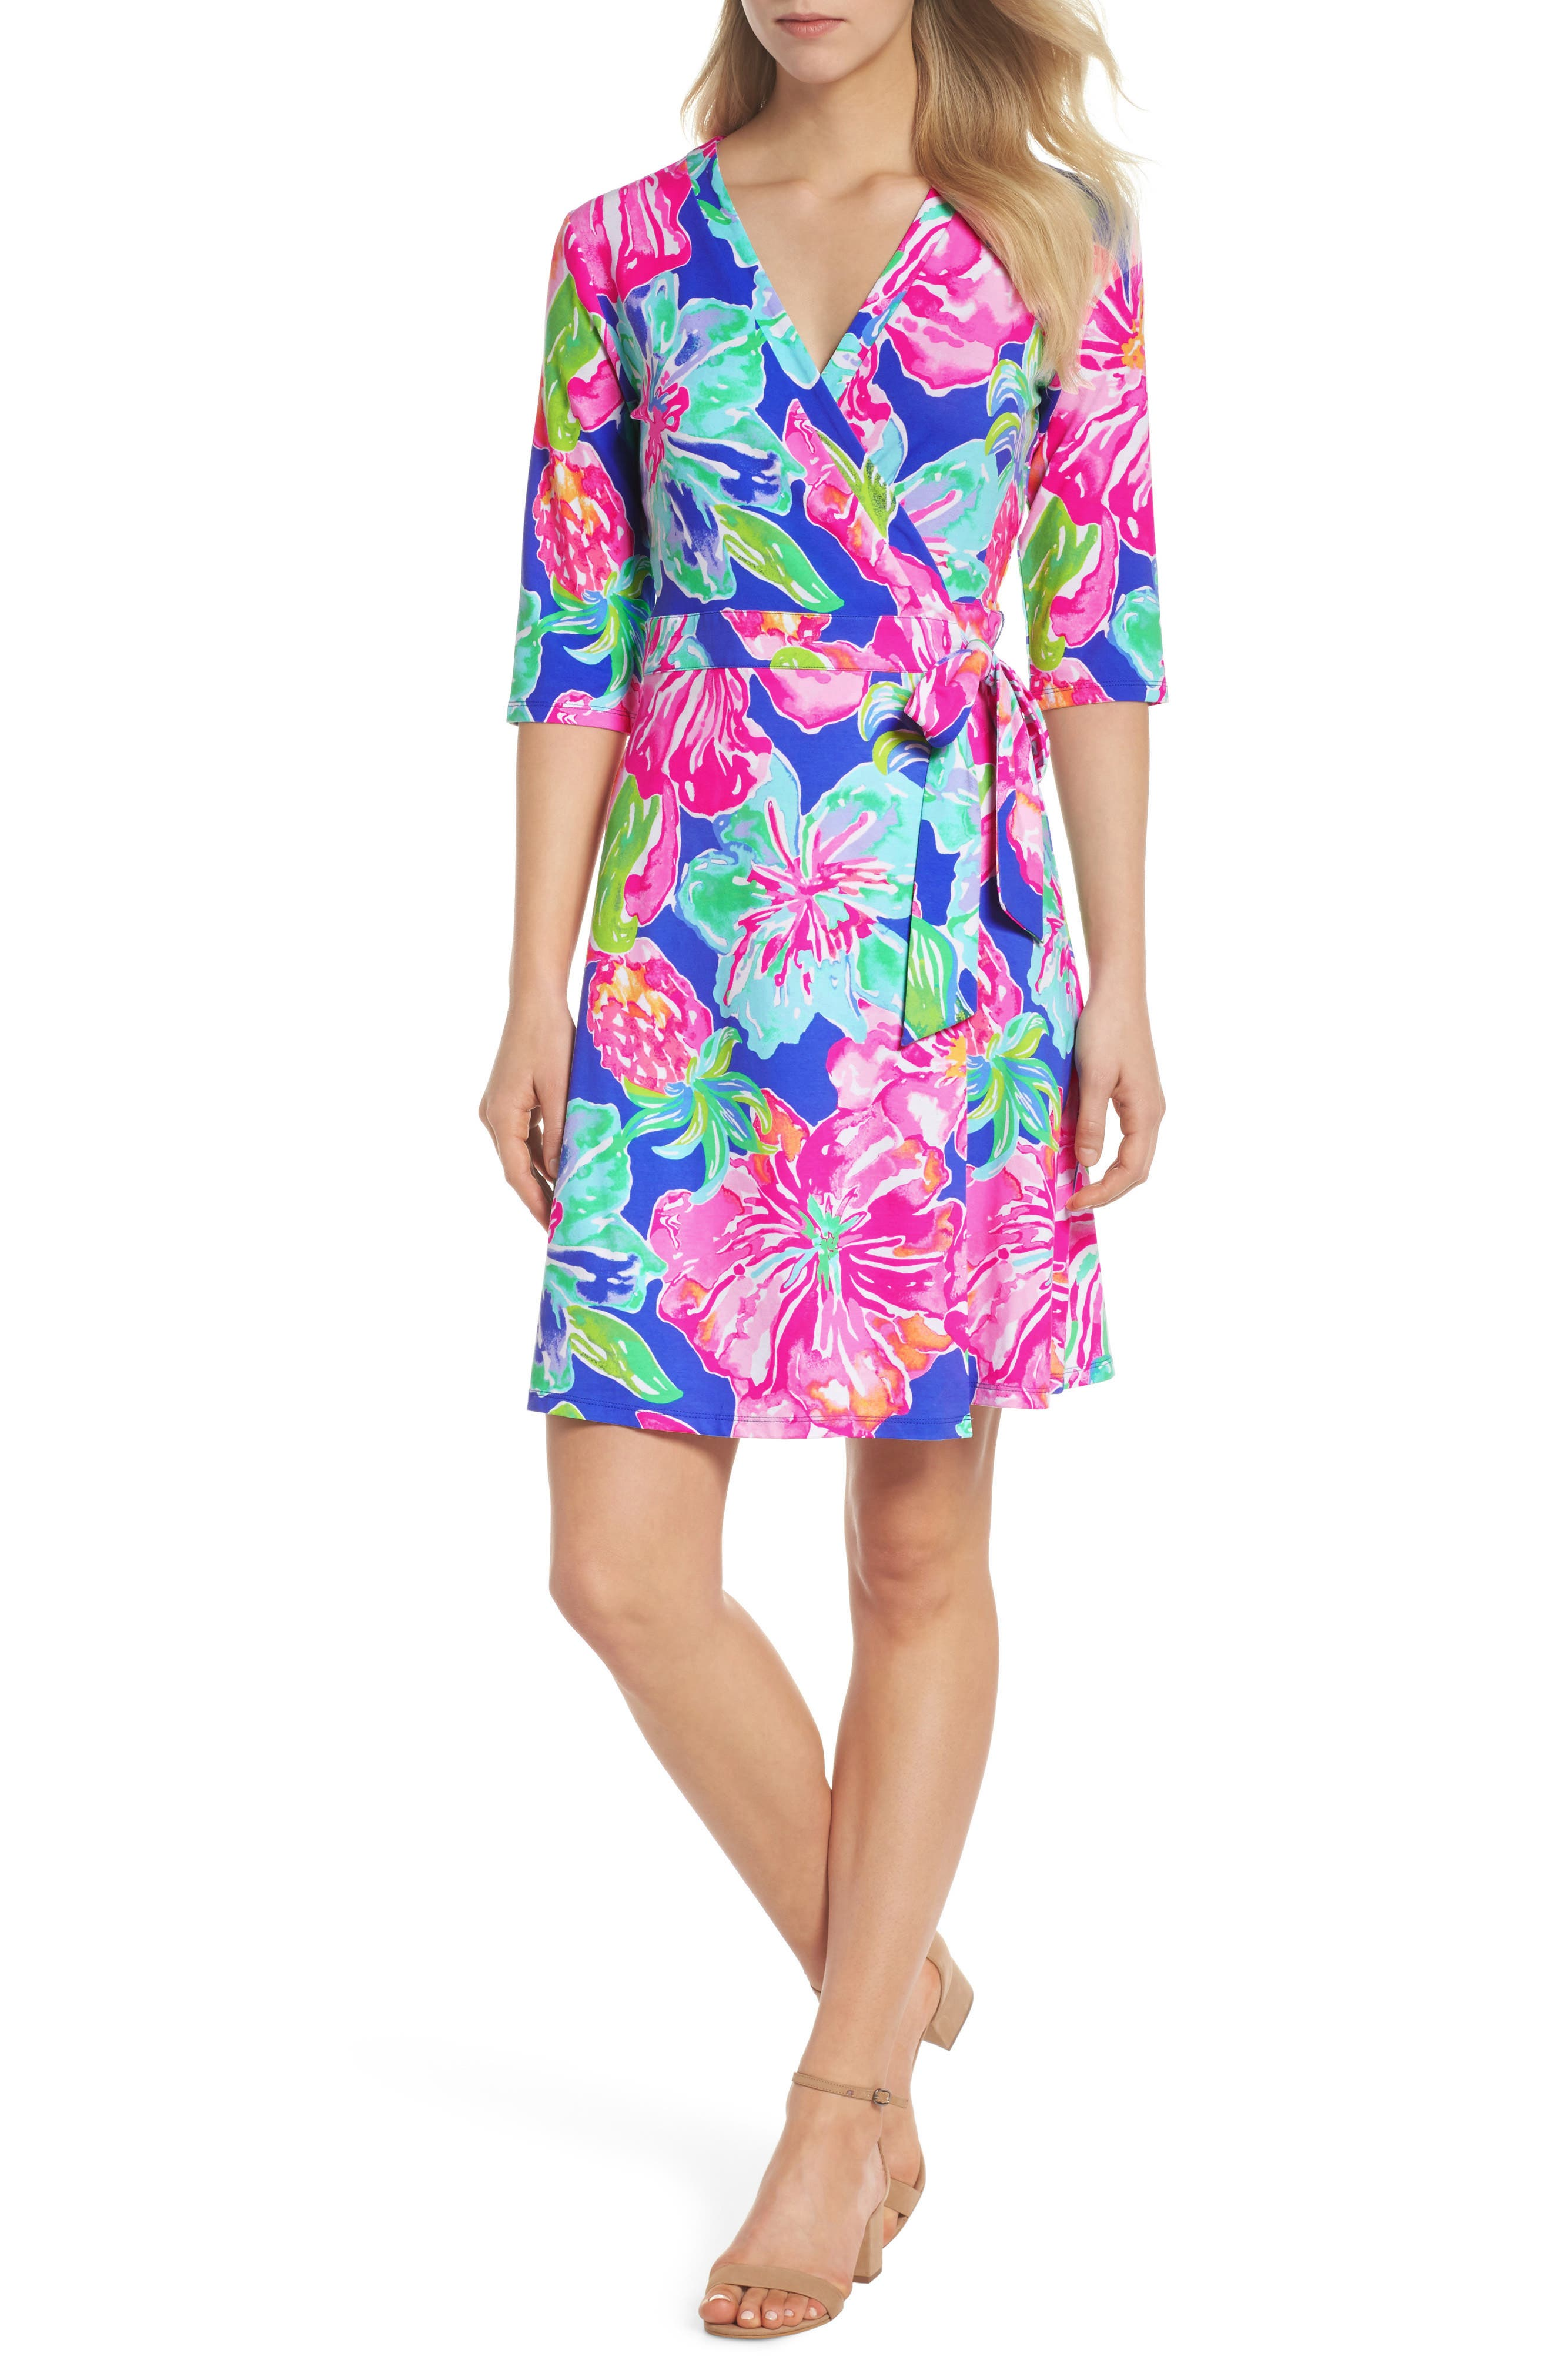 Marvista Wrap Dress,                             Main thumbnail 1, color,                             BECKON BLUE JUNGLE UTOPIA